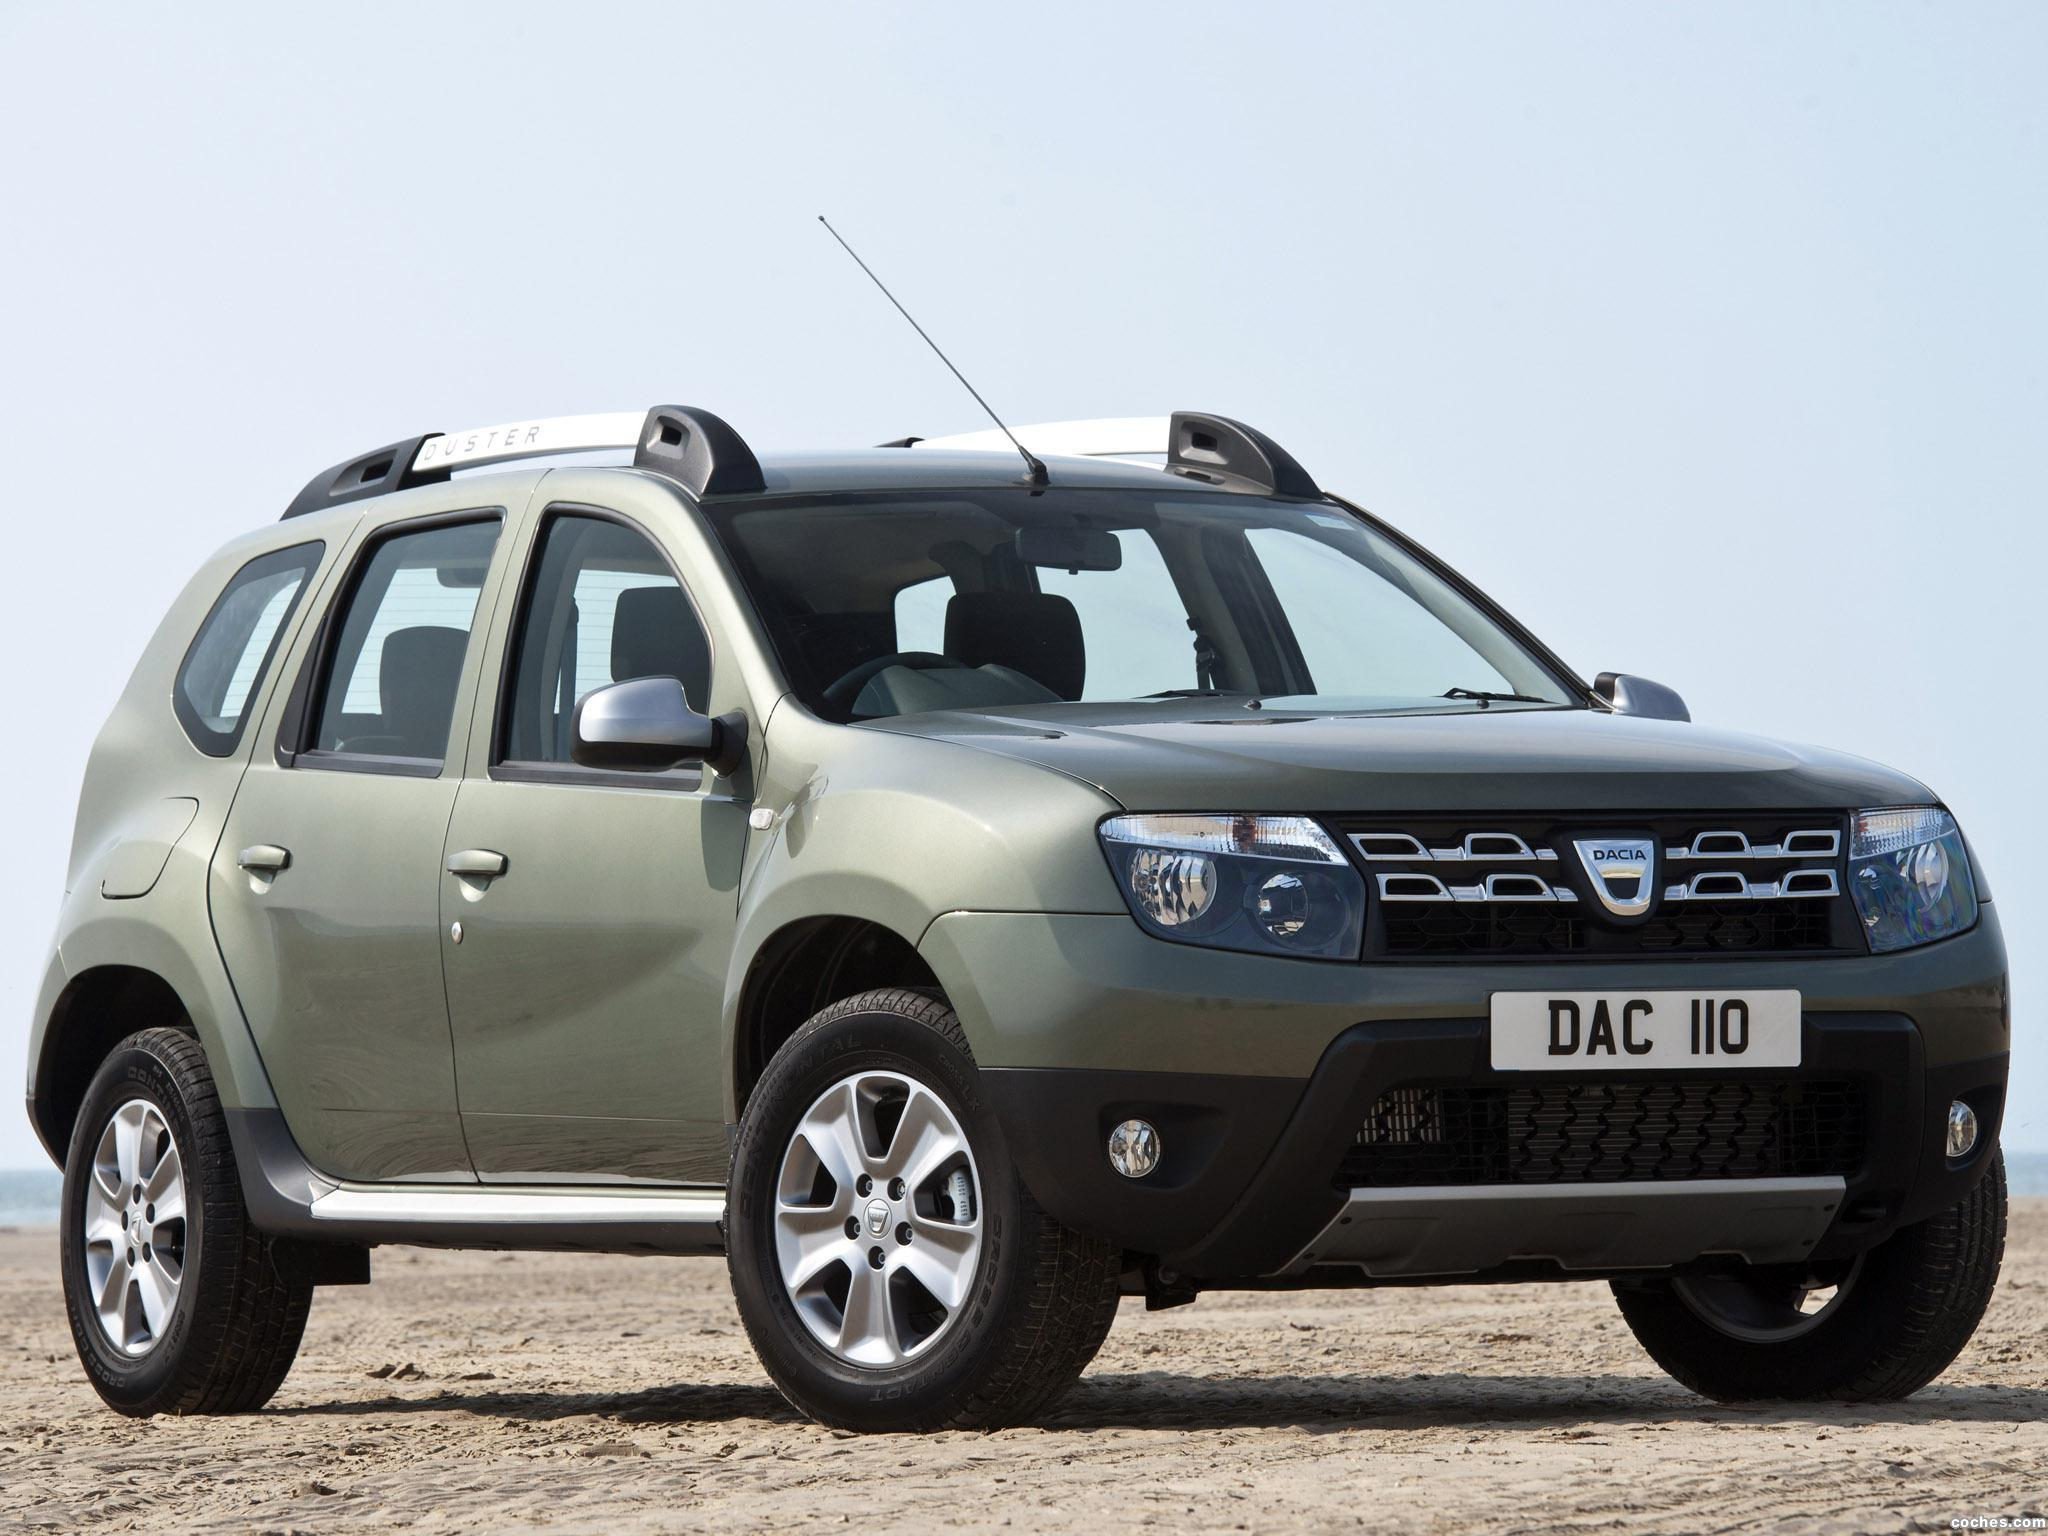 Fotos de dacia duster uk 2014 foto 6 for Immagini dacia duster